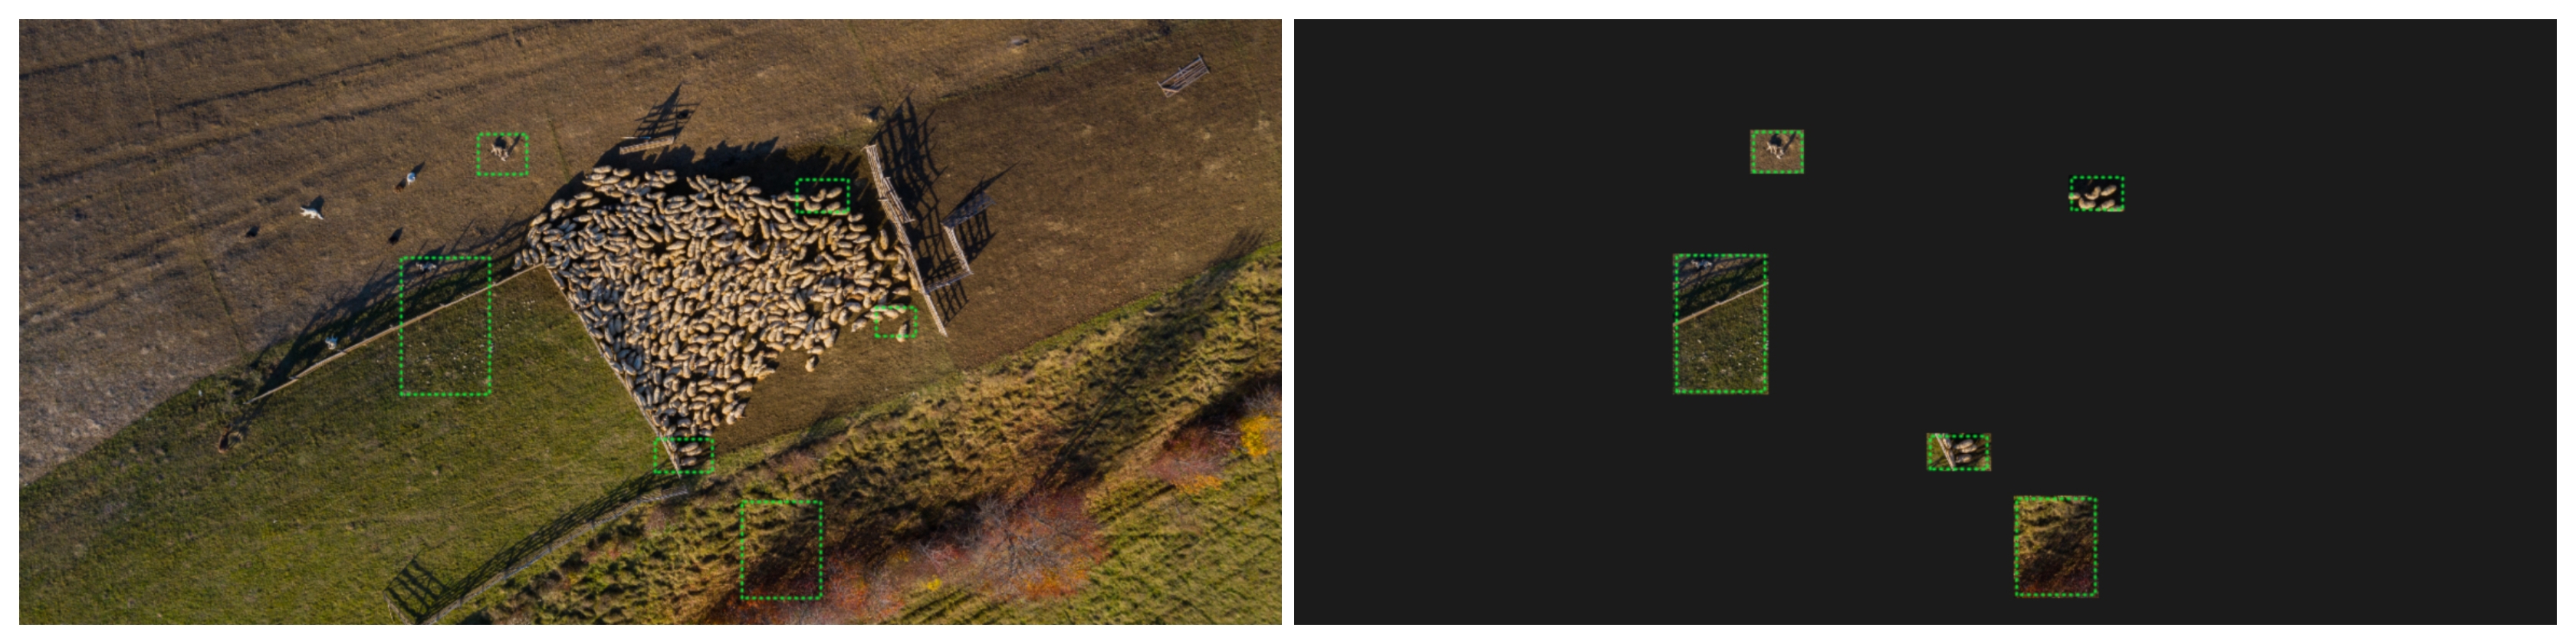 Fig. 4: What humans see (left) vs what the AI model can see (right) once the training areas have been added.